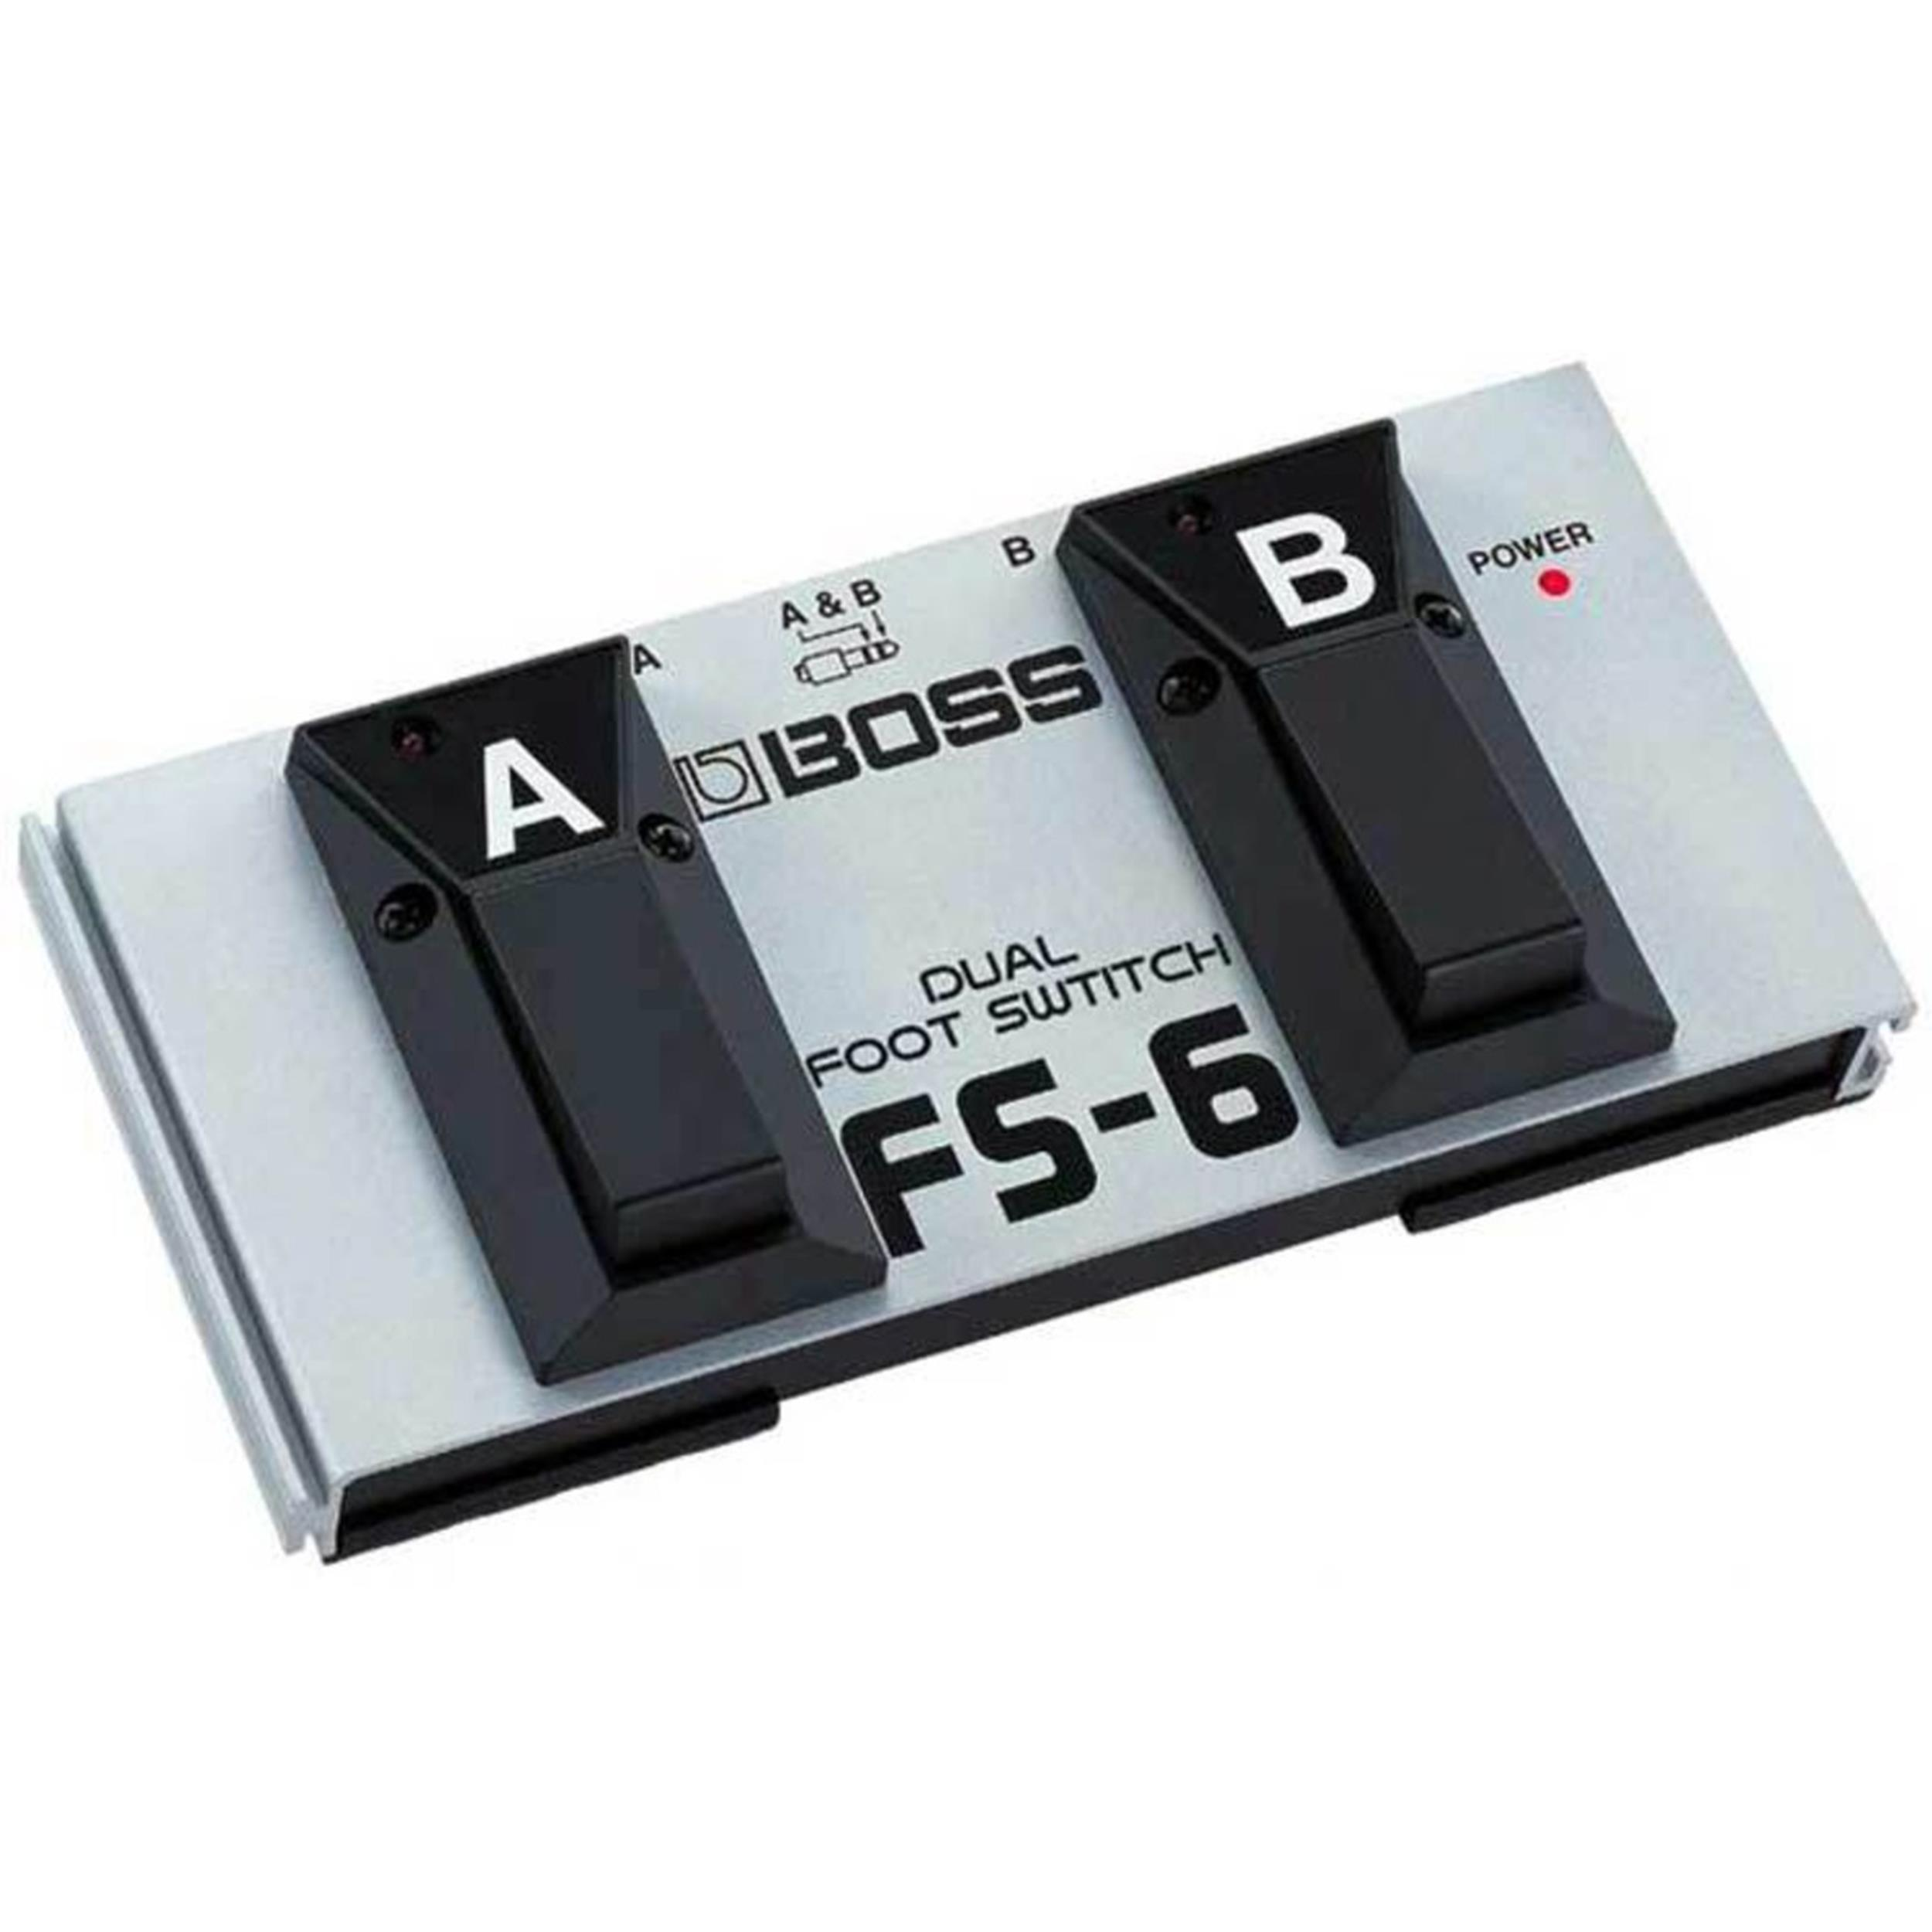 BOSS FS 6 DUAL FOOTSWITCH - Chitarre Amplificatori - Pedali Footswitch